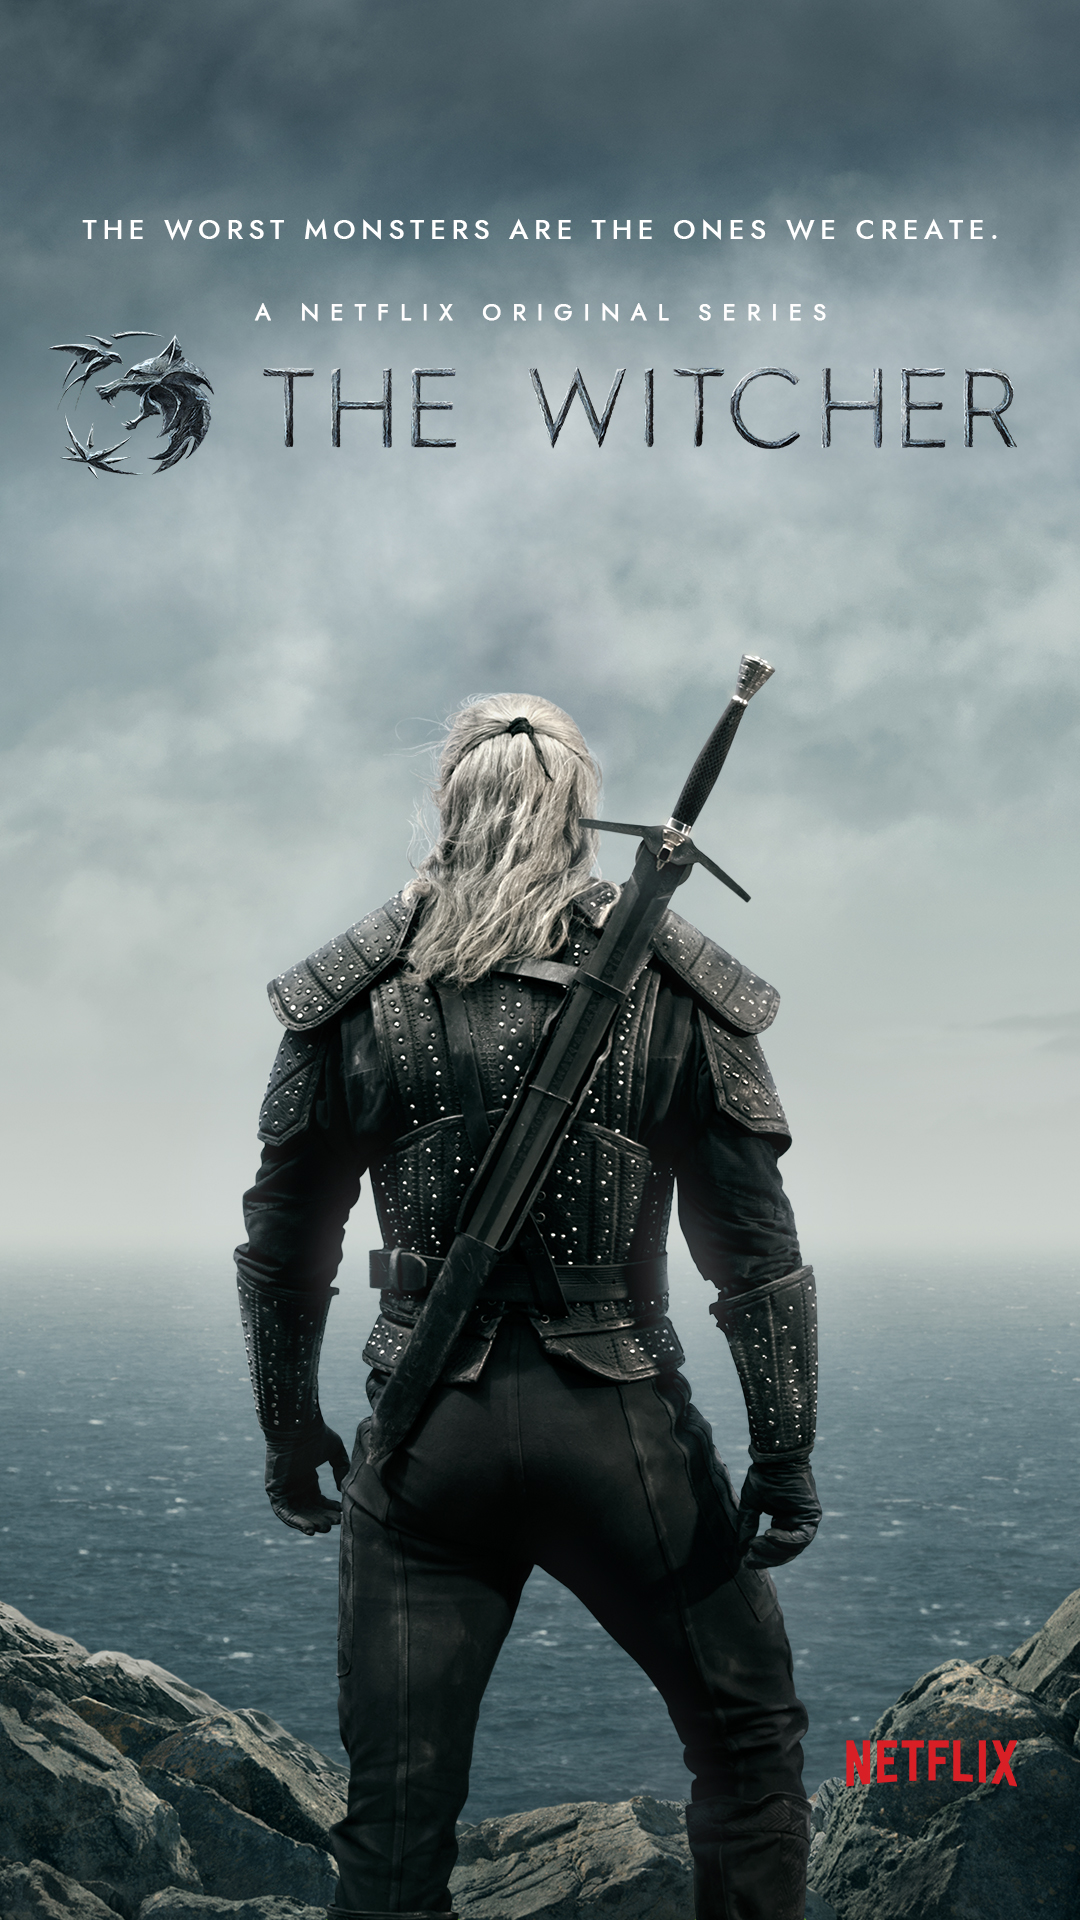 Netflix reveals first look at The Witcher cast